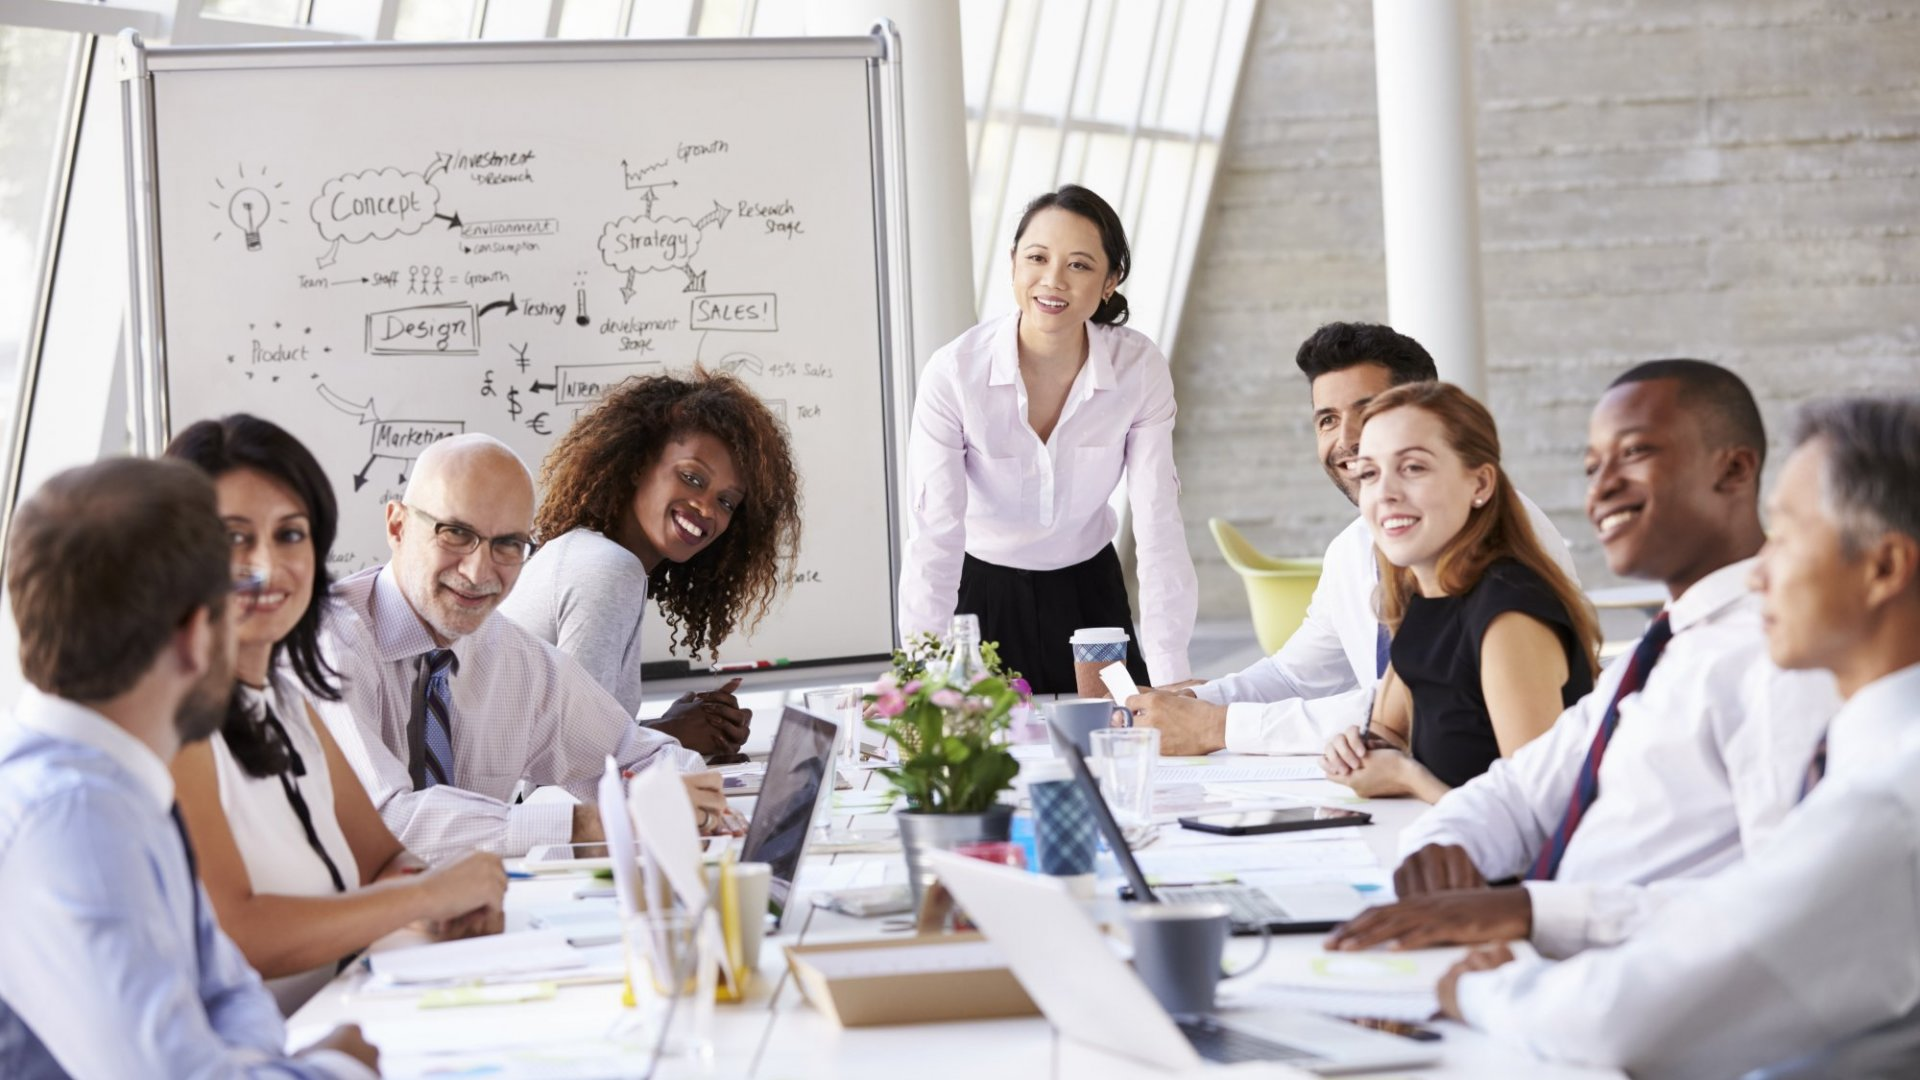 6 Steps to Build Your Company Culture